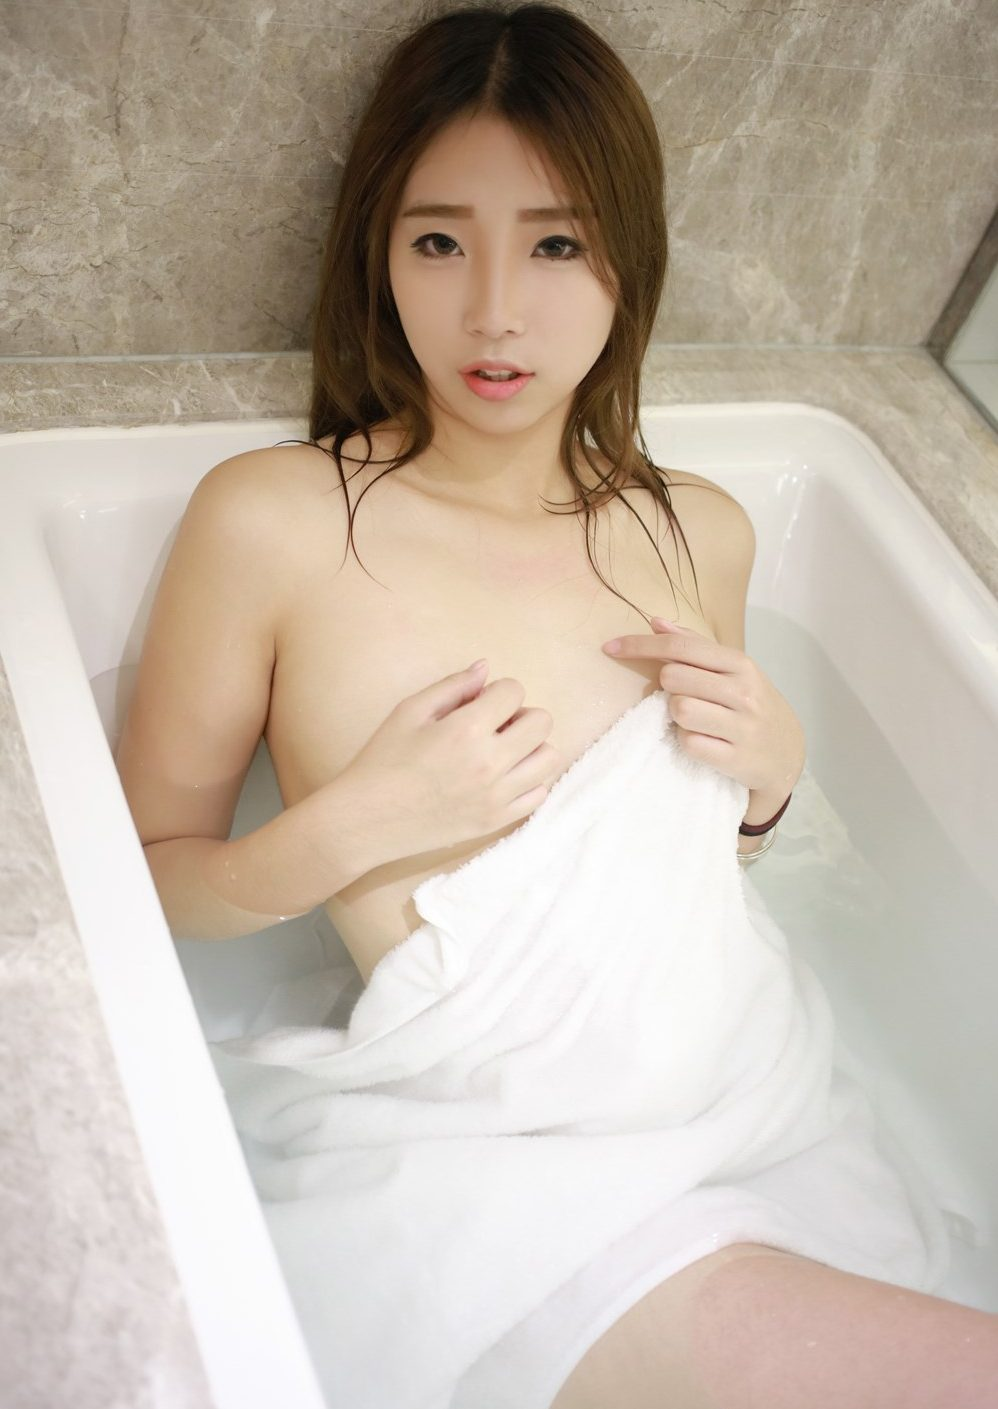 petite girl gets naked and naughty on the bathroom